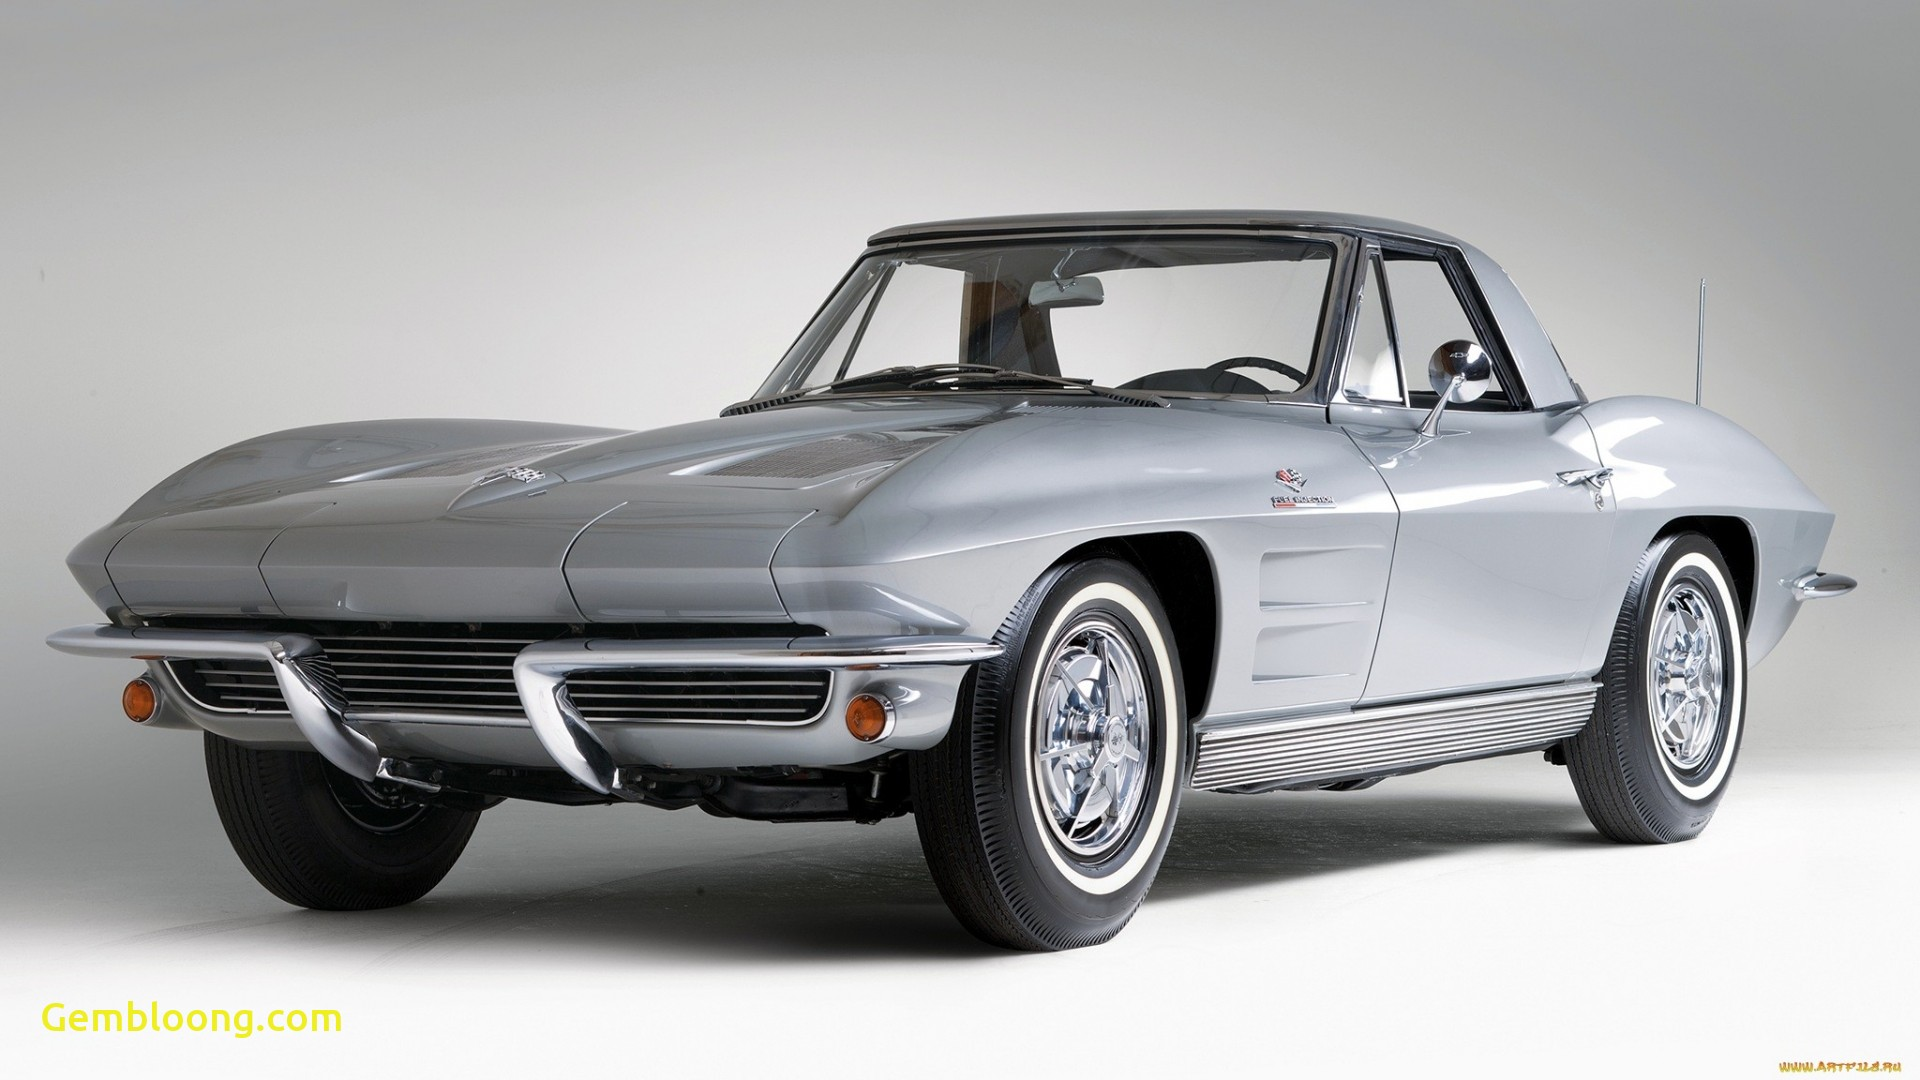 Muscle Cars for Sale Awesome Free Sale Classic Muscle Cars Classic Cars for Sale